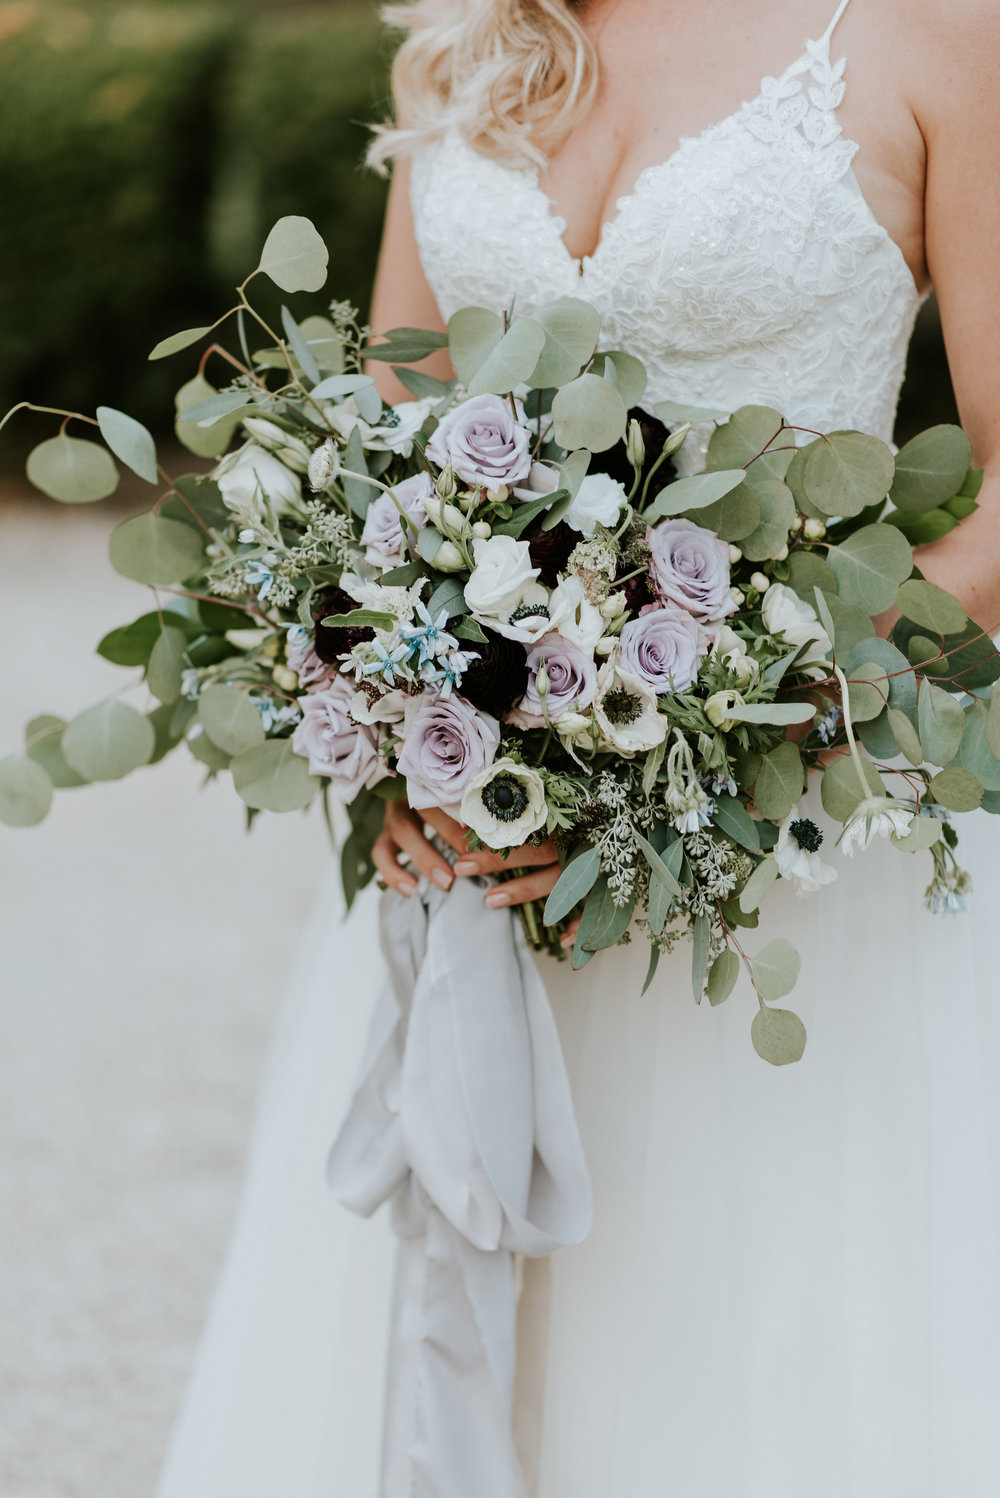 Rustic Oyster Themed Eastern Shore Maryland Outdoor Wedding by East Made Event Company Wedding Planner and Bekah Kay Creative907.jpg